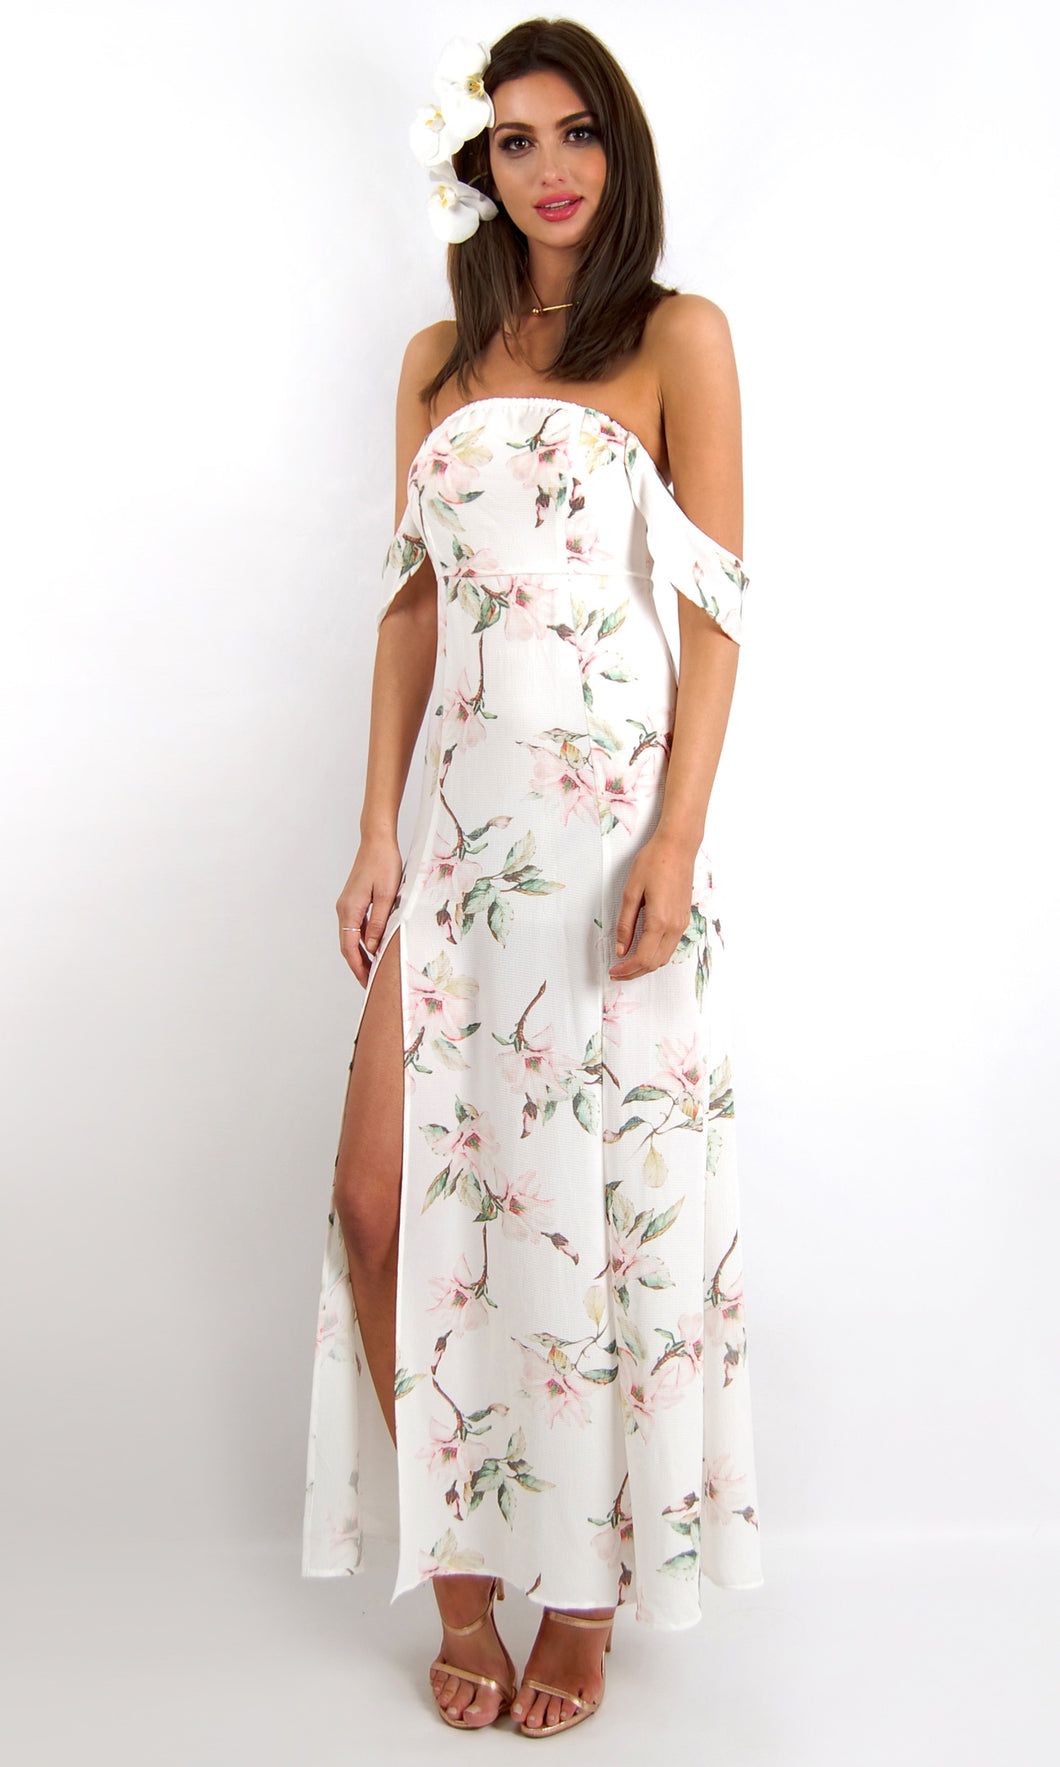 SSLP111SS Crushed Crepe Floral Maxi Dress (Pack) On Sale